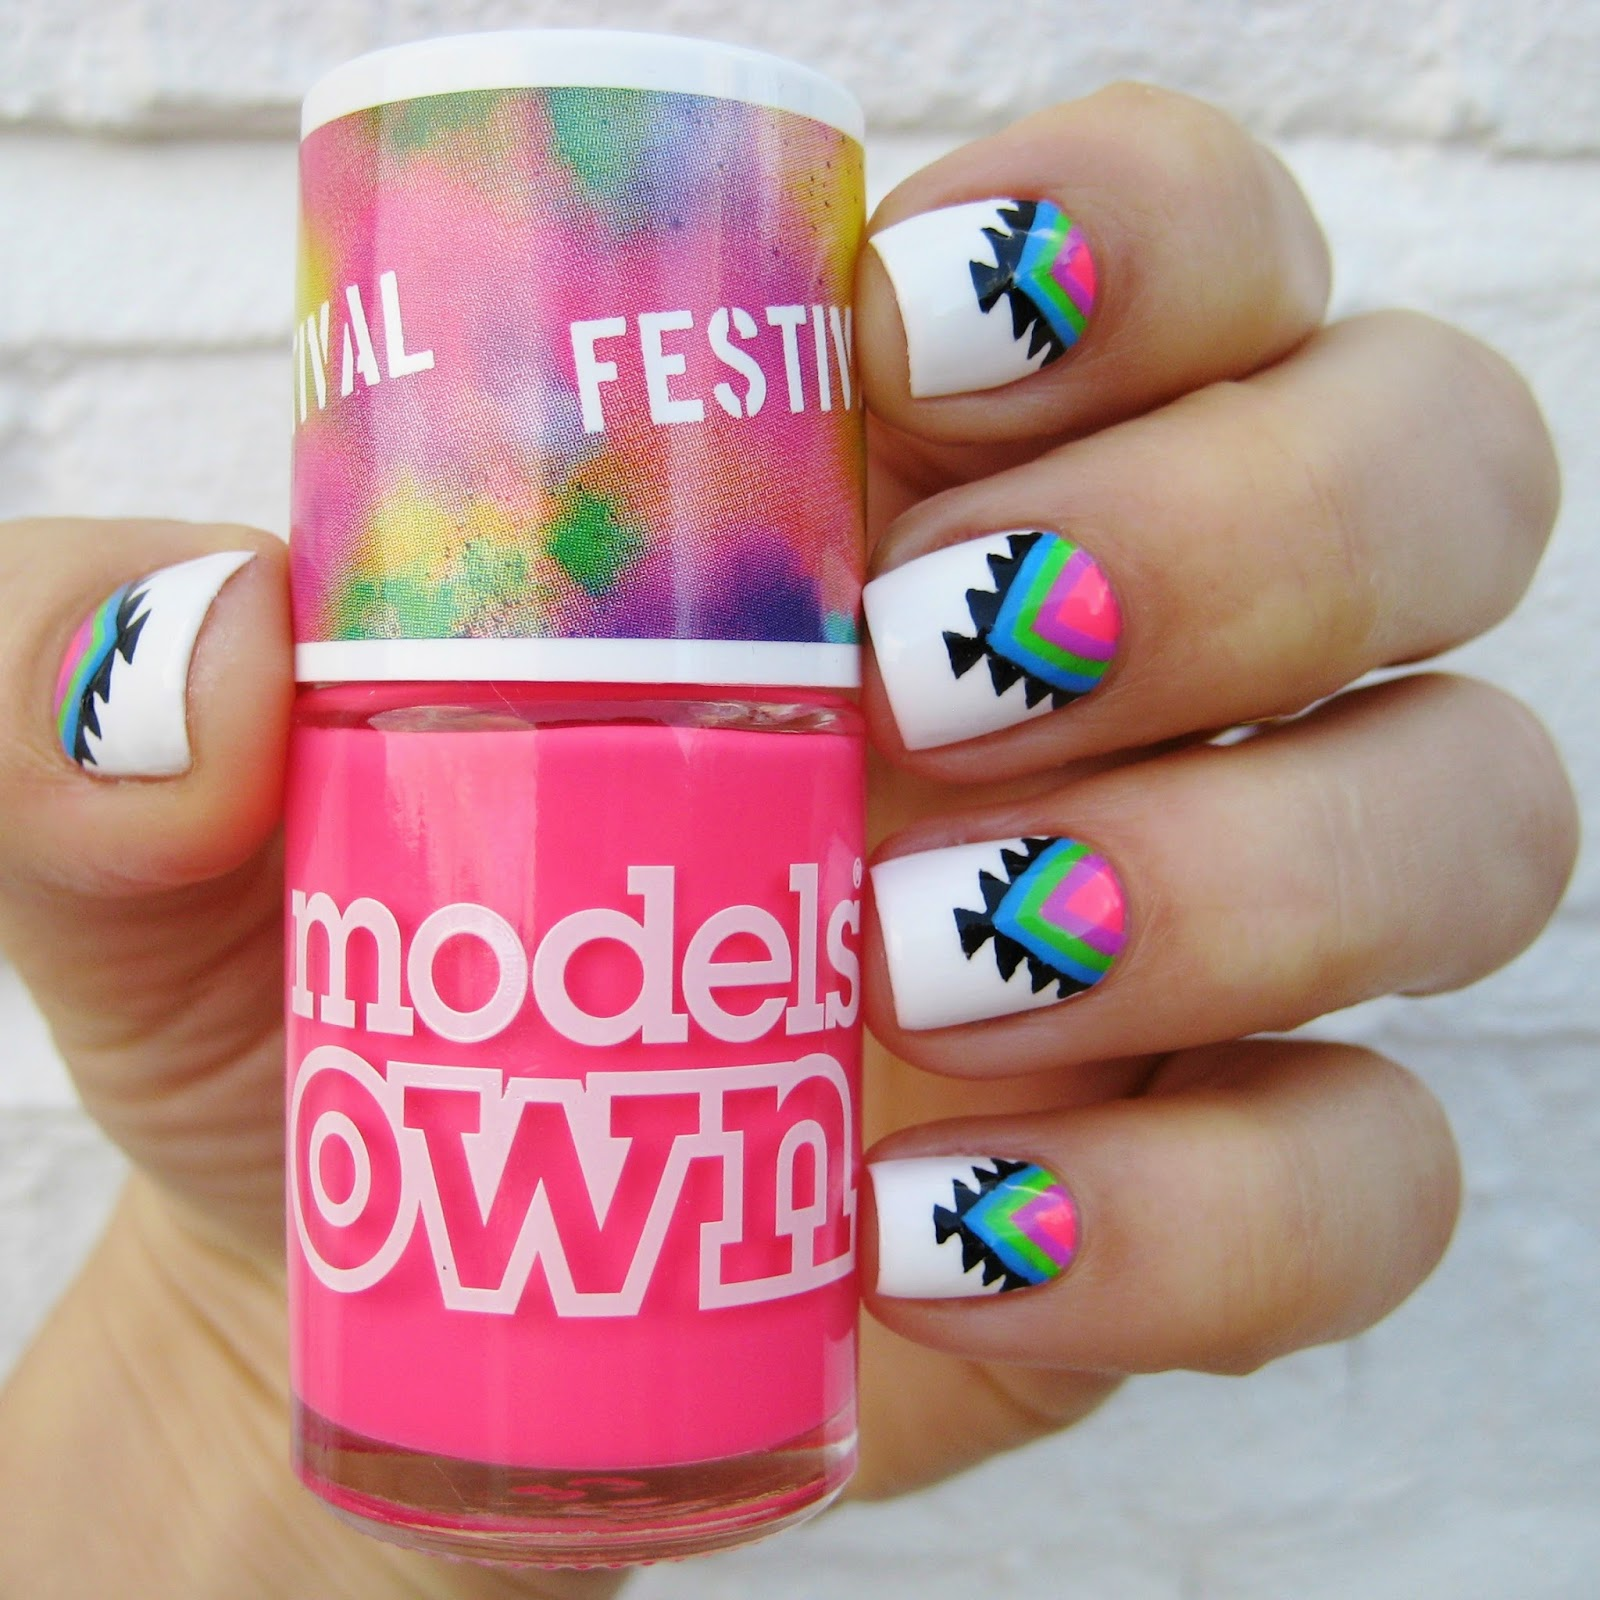 Models Own Festival Nail Polish